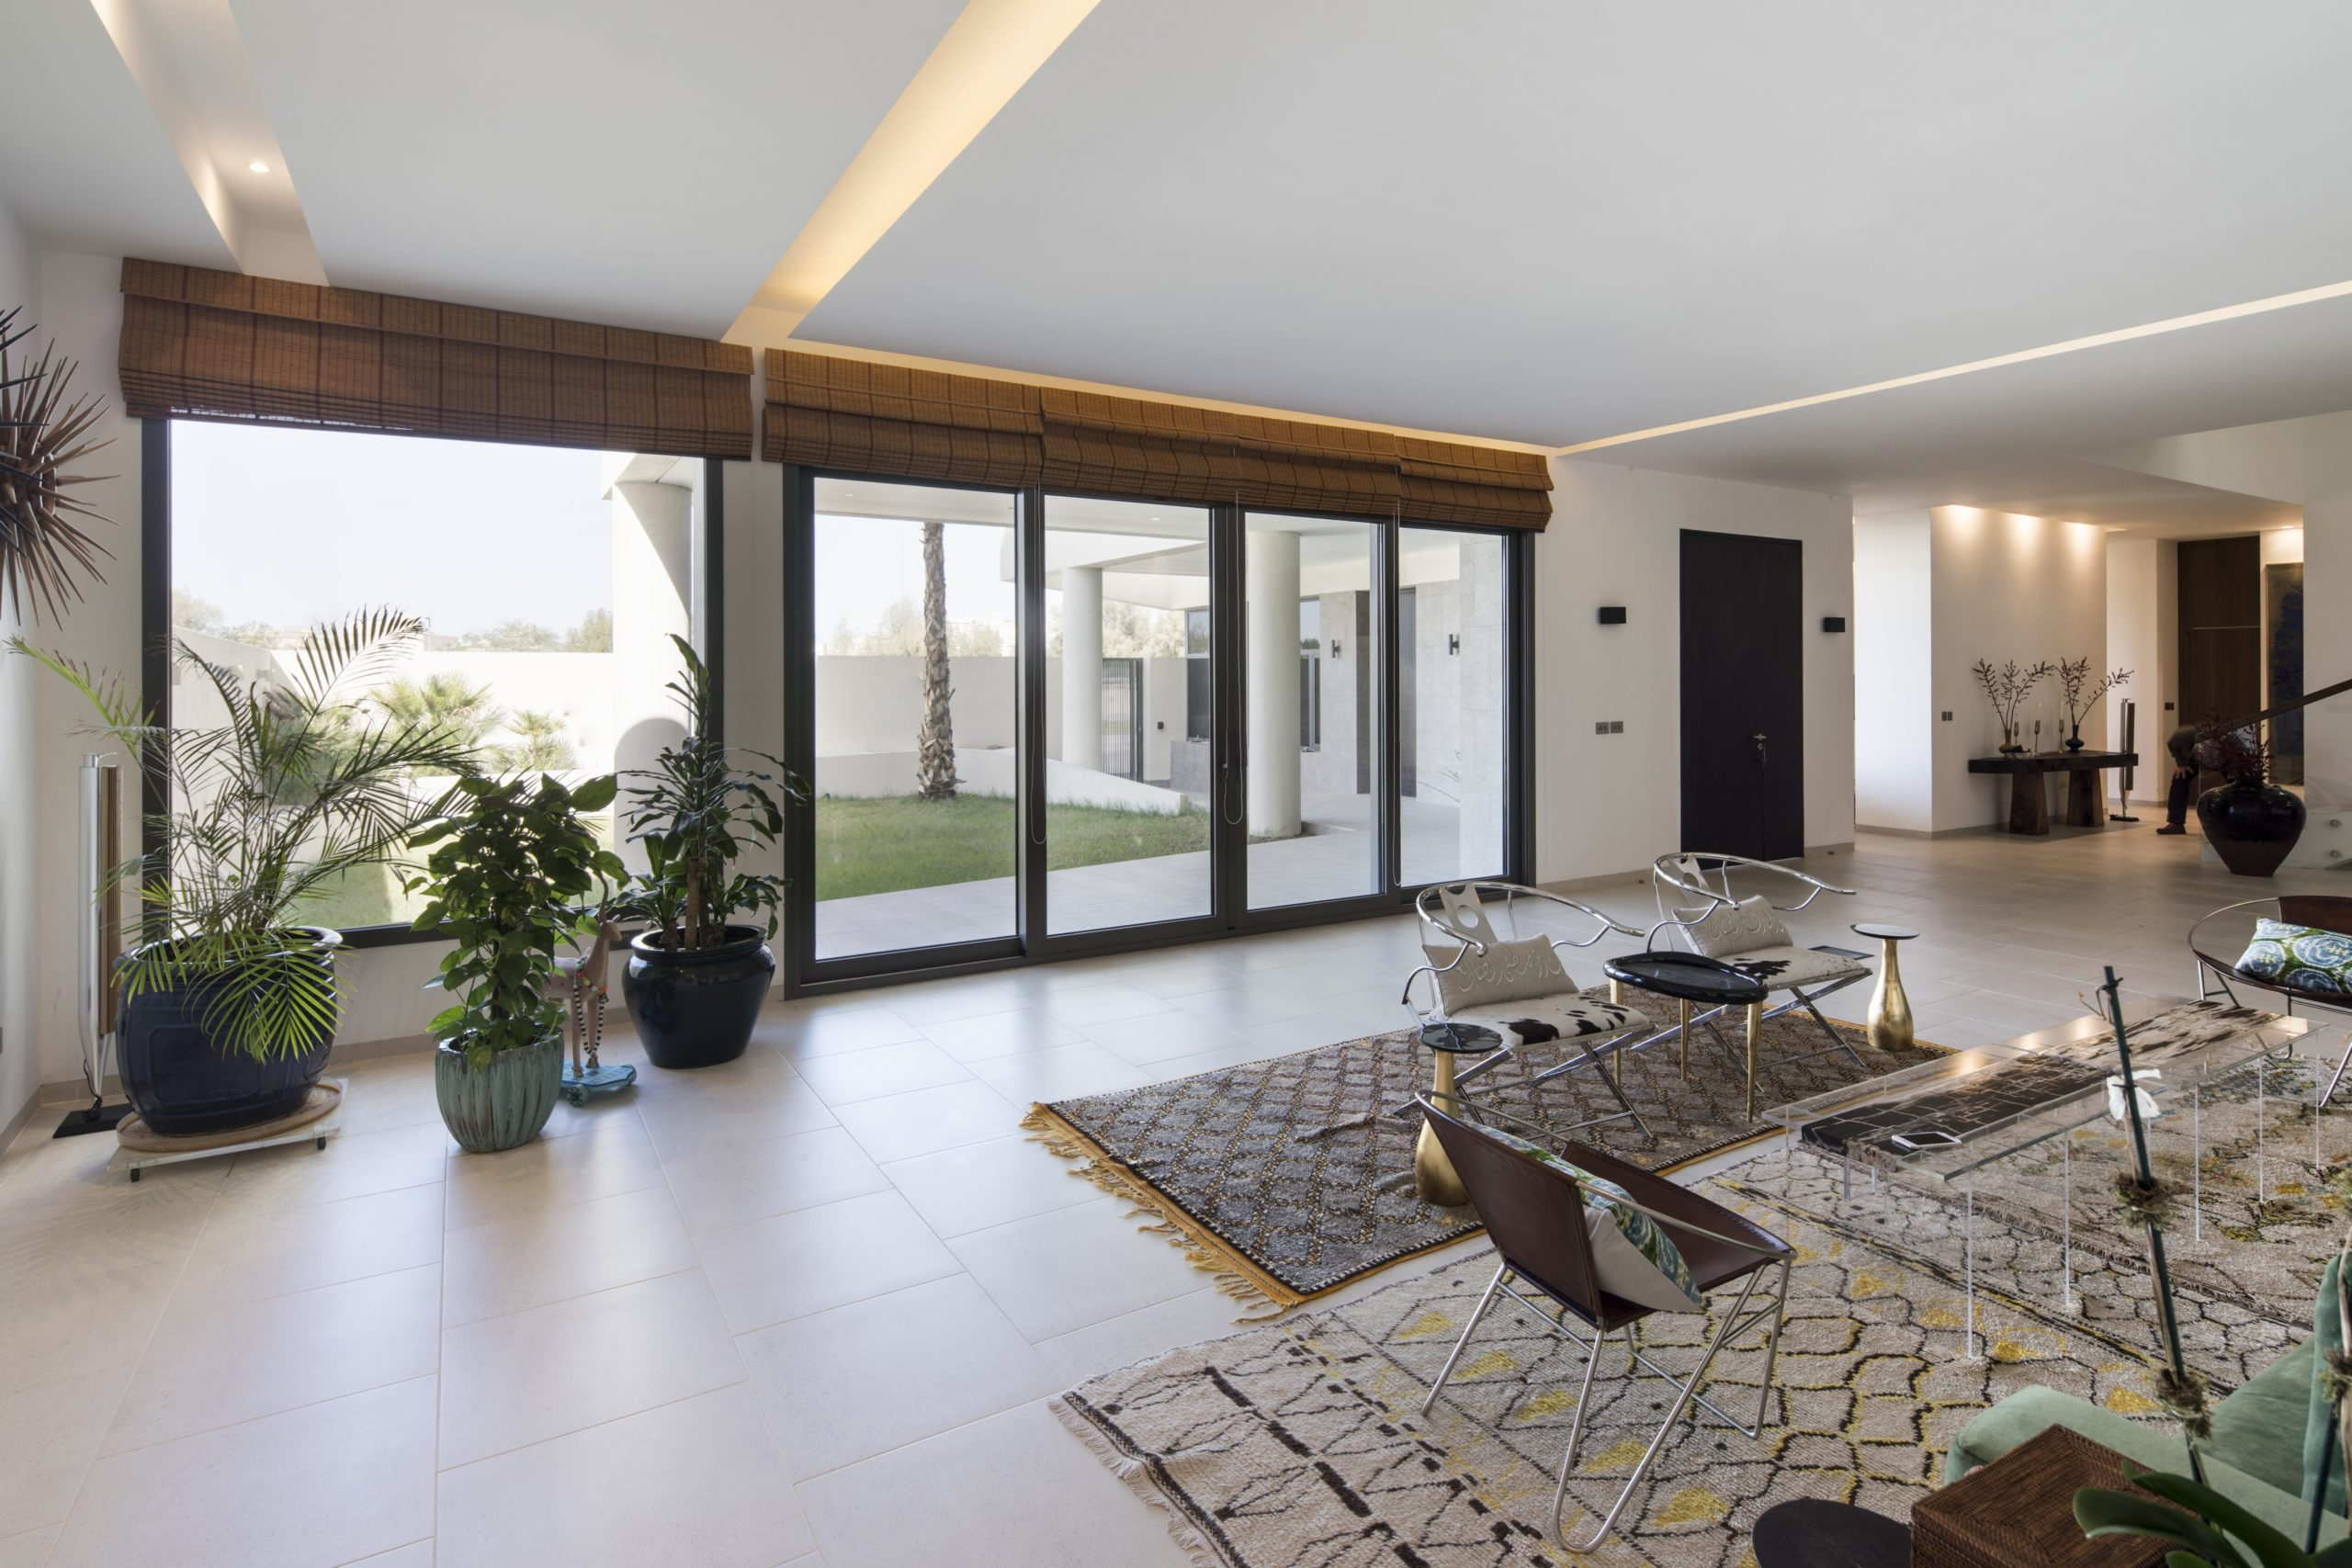 The interiors of the house are brightened by the glass doors that lead to the patio adorned with various potted plants.